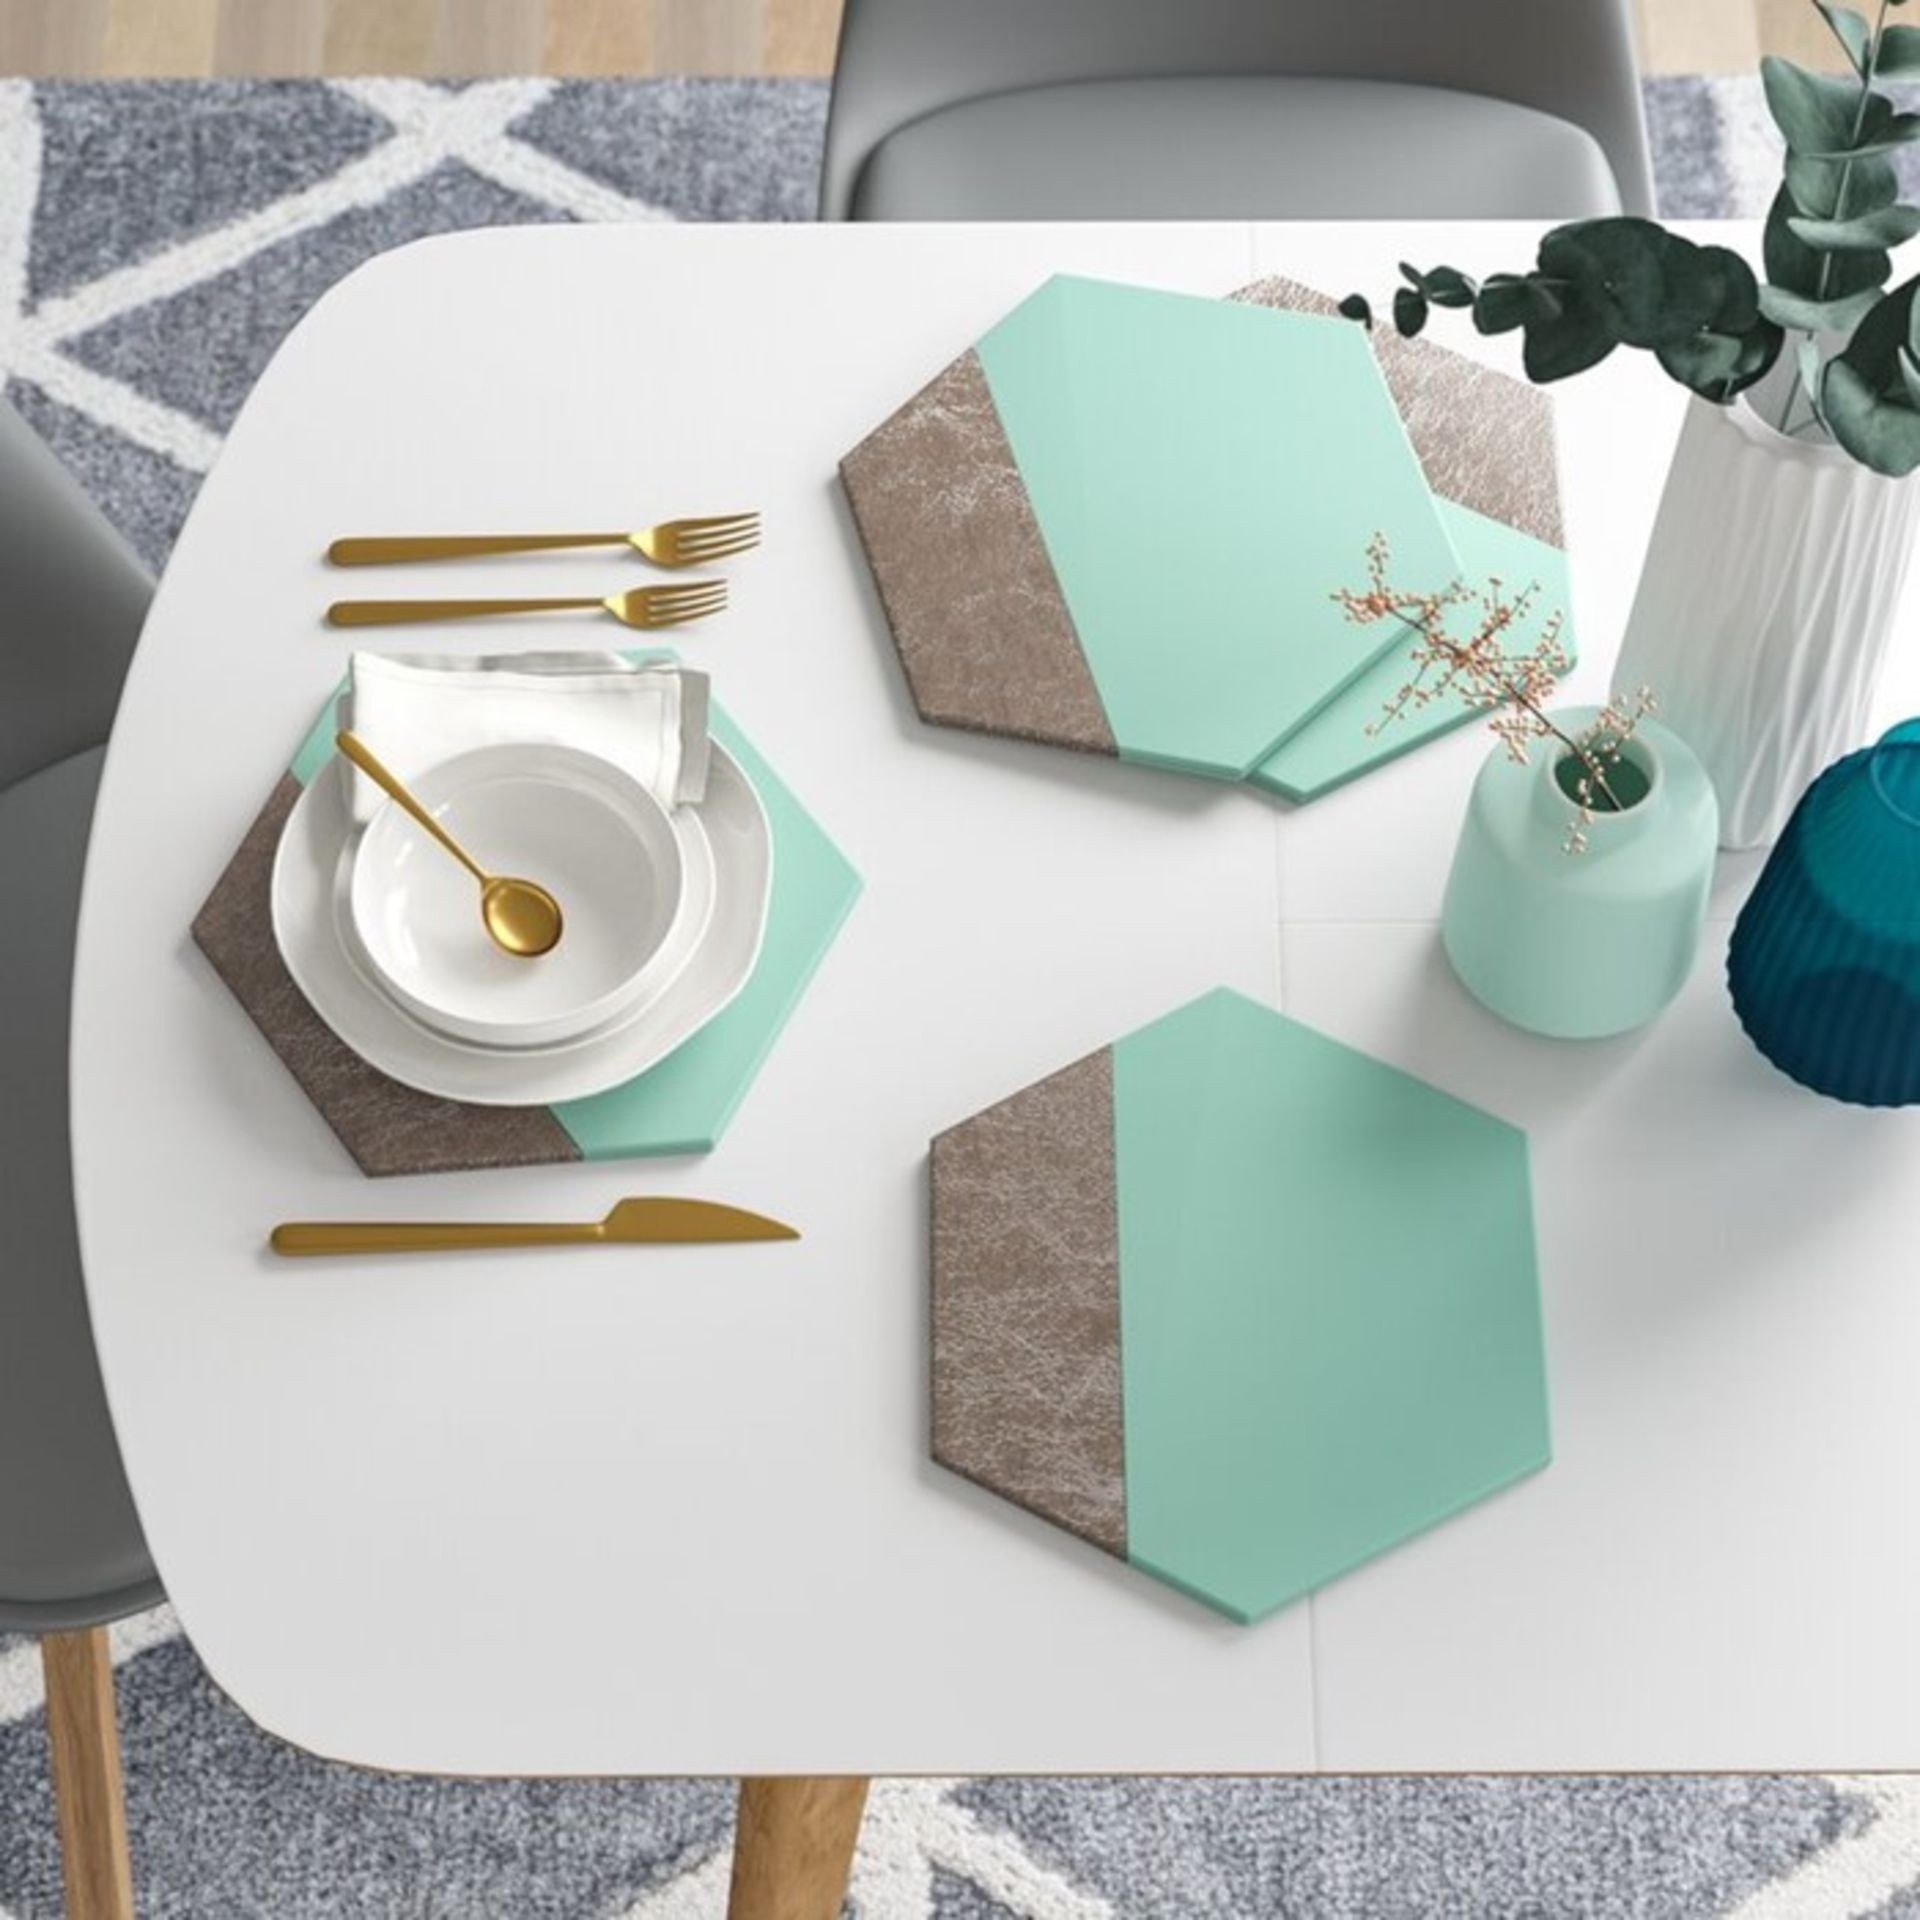 17 Stories, Hexagonal Leather Effect Placemat (JADE/SILVER) X4 - RRP £22.99 (CCOP2031 - 21629/3) 4G